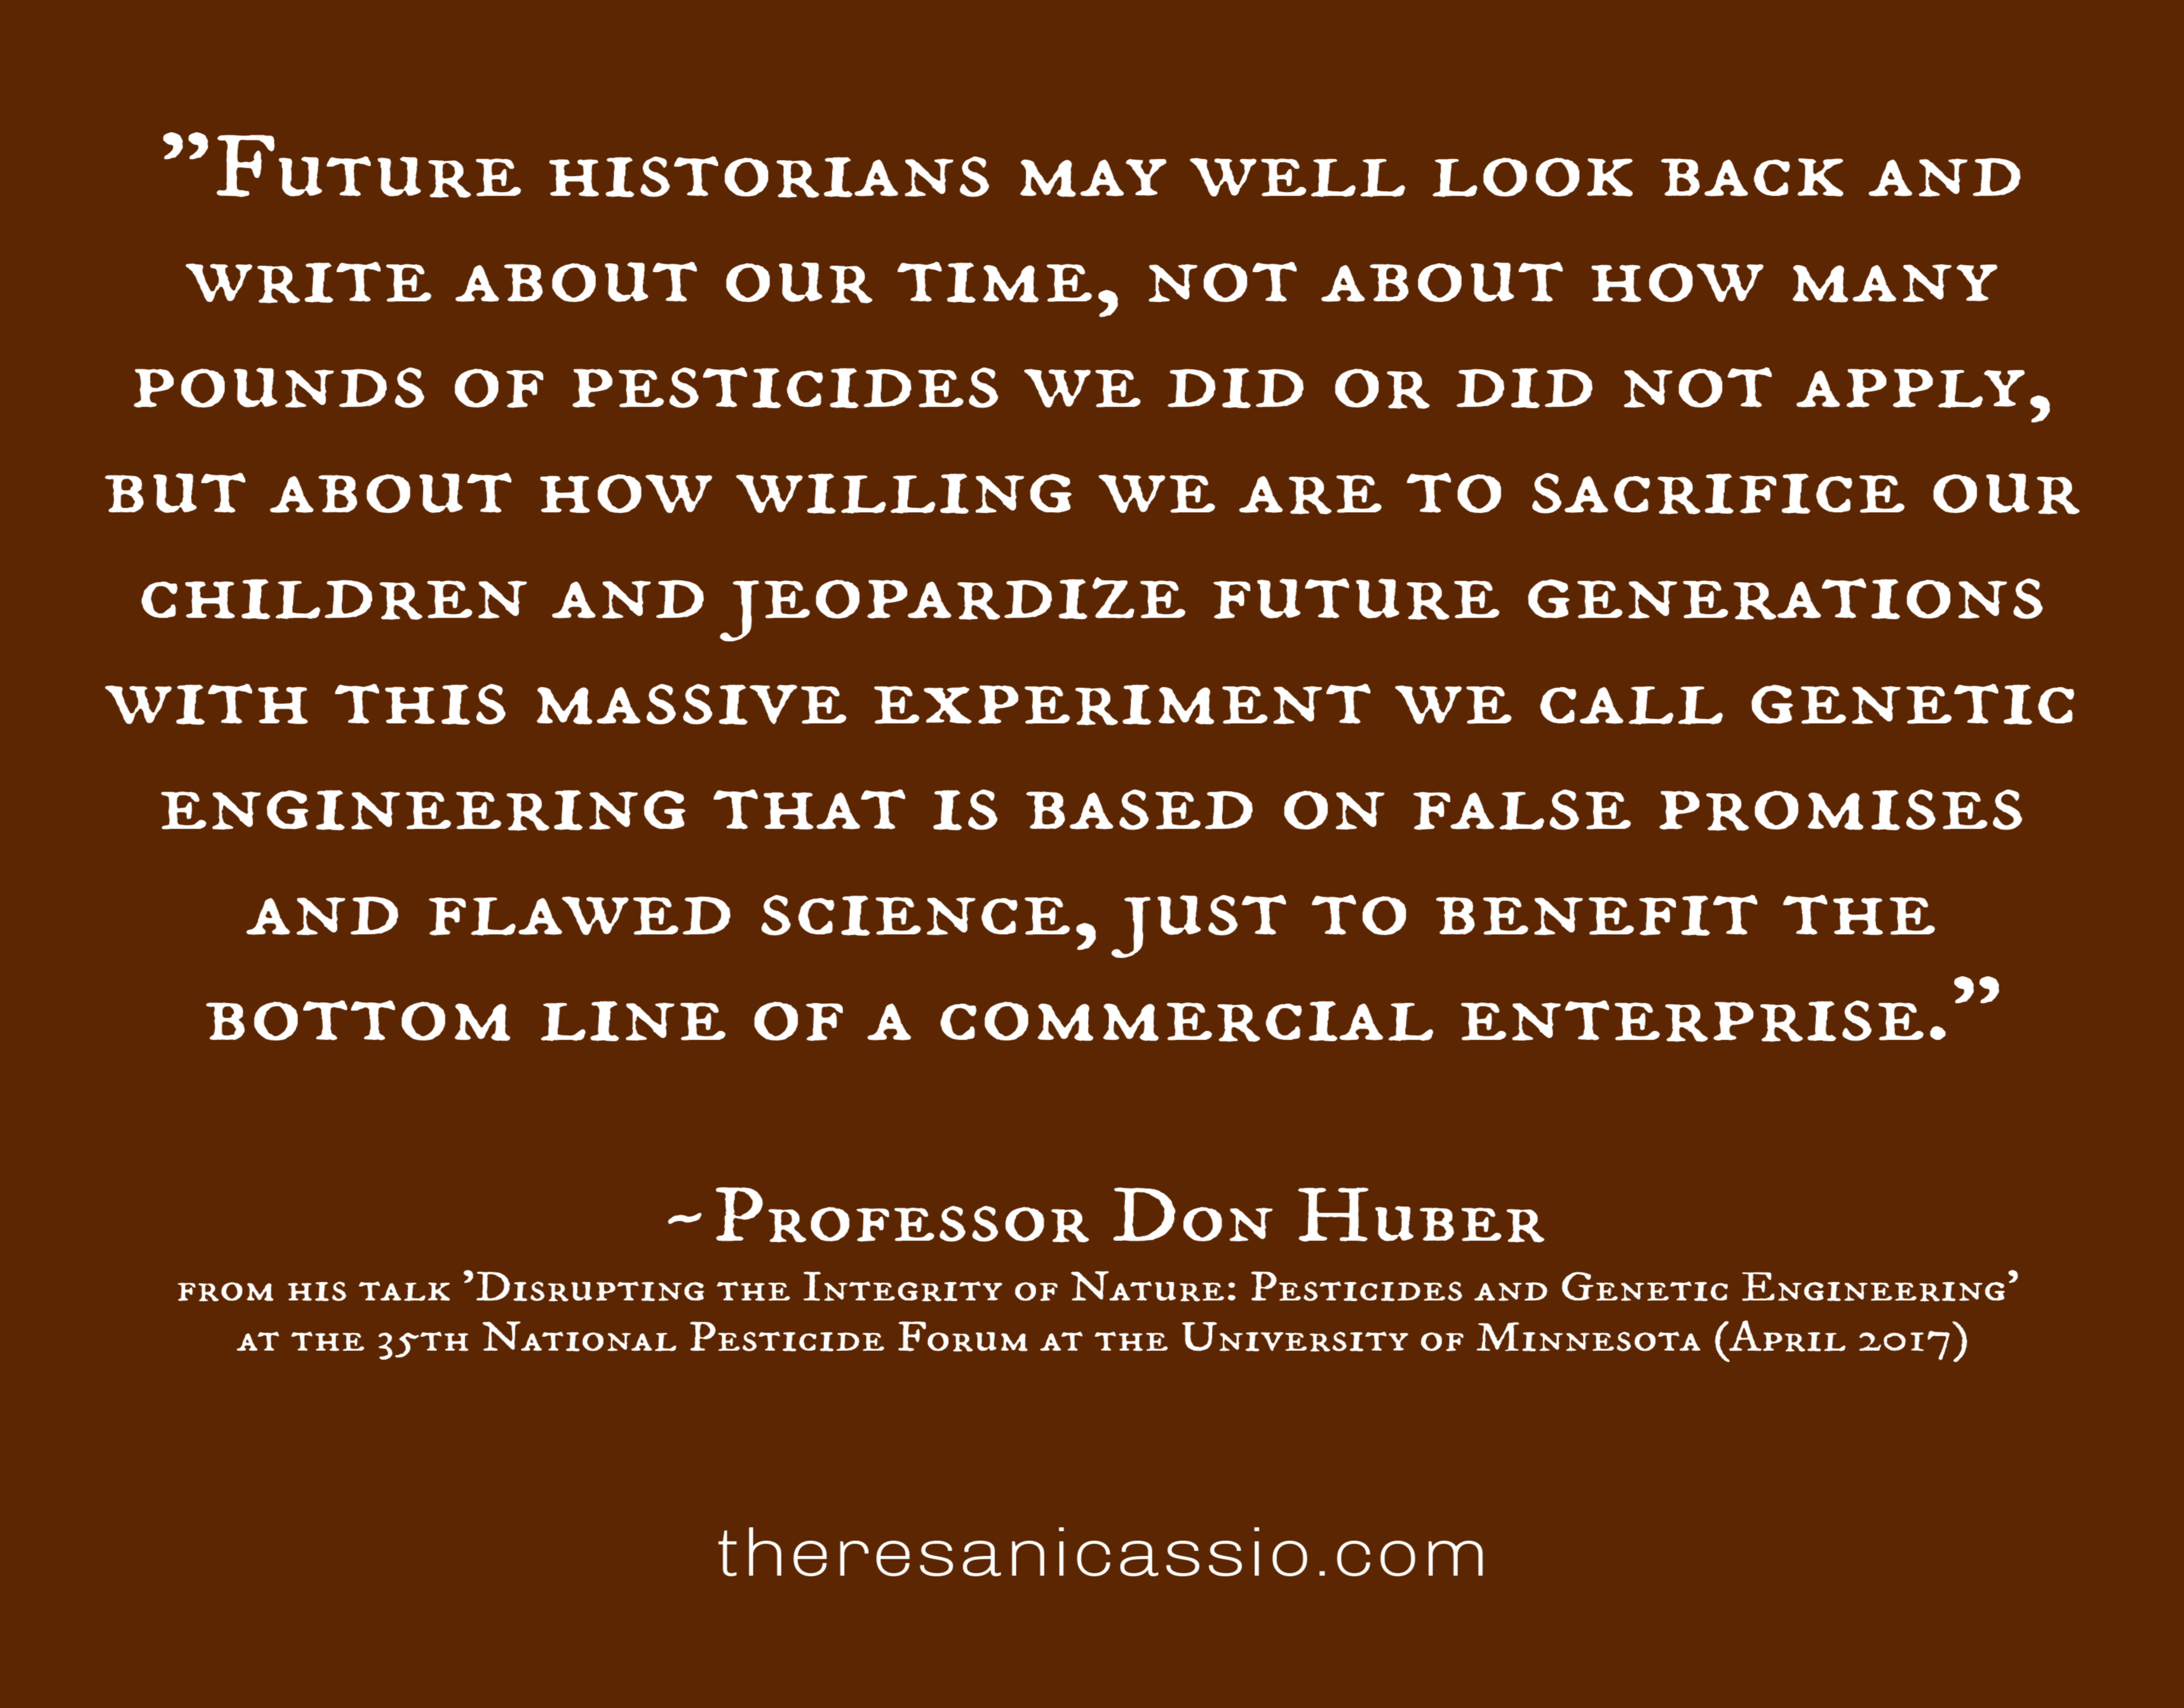 """""""Future historians may well look back and write about our time, not about how many pounds of pesticides we did or did not apply, but about how willing we are to sacrifice our children nd jeopardize future generations with this massive experiment we call genetic engineering that is based on false promises and flawed science, just to benefit the bottom line of a commercial enterprise."""" ~Professor Don Huber from his talk 'Disrupting the Integrity of Nature: Pesticides and Genetic Engineering' at the 35th National Pesticide Forum at the University of Minnesota (April 2017)"""